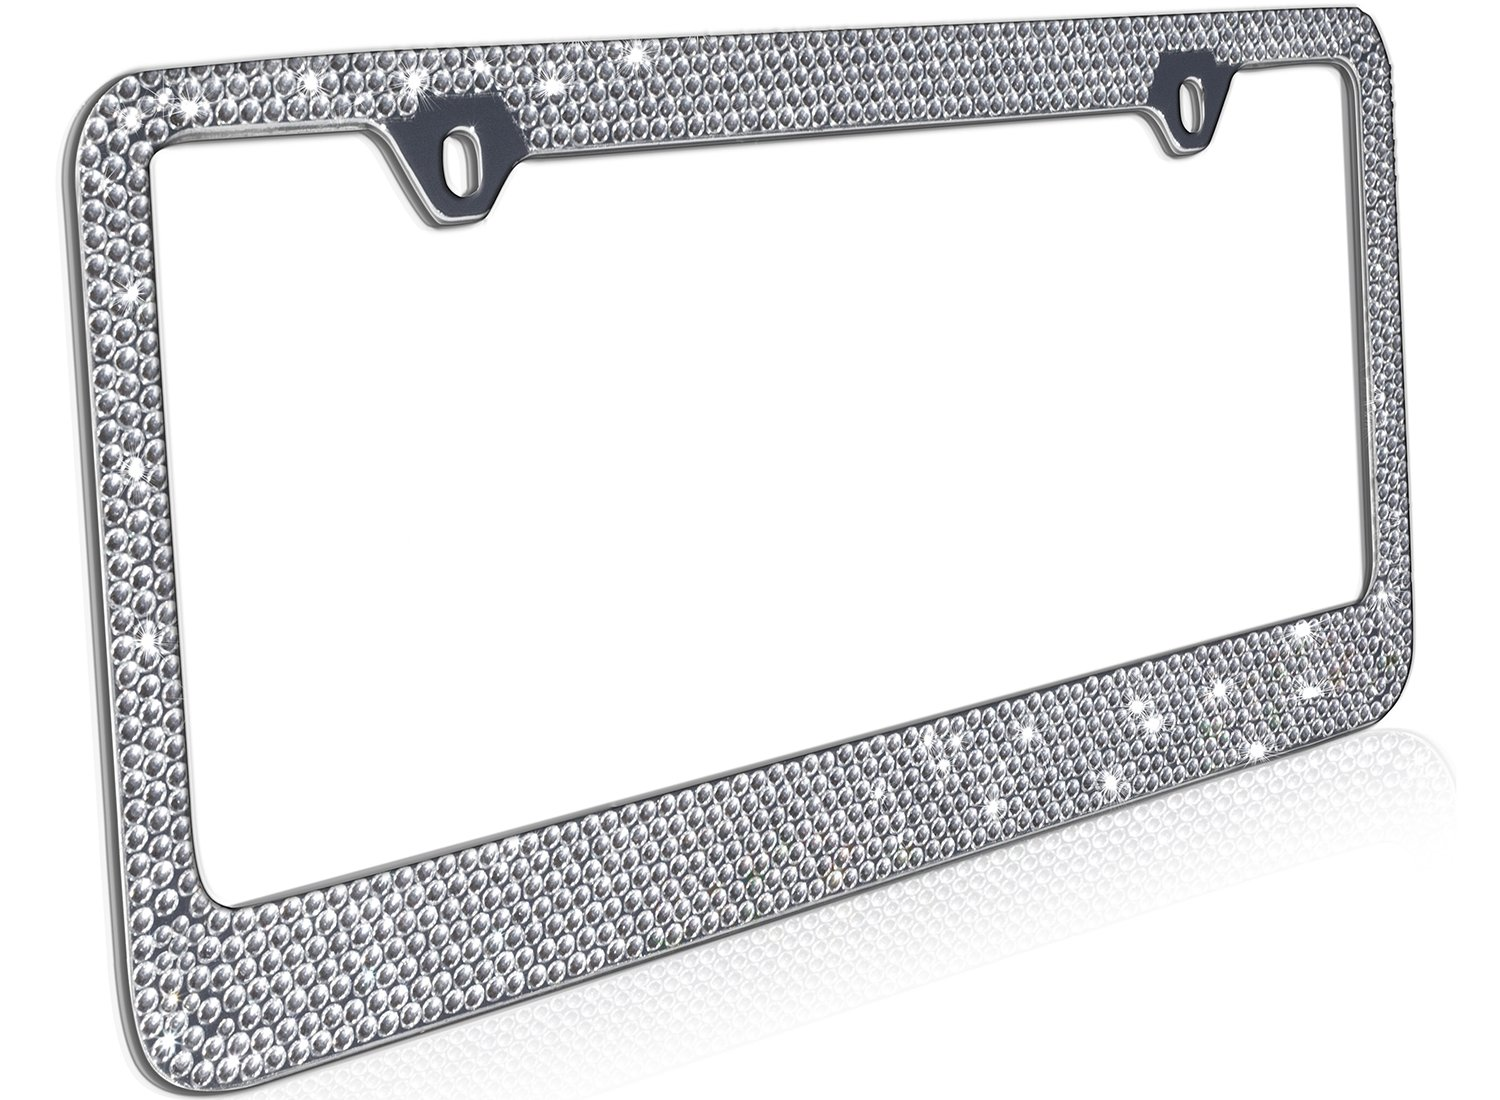 amazoncom oxgord rhinestone license plate frame metal chrome diamond bling glitter custom 12 rows of diamonds 1pc automotive